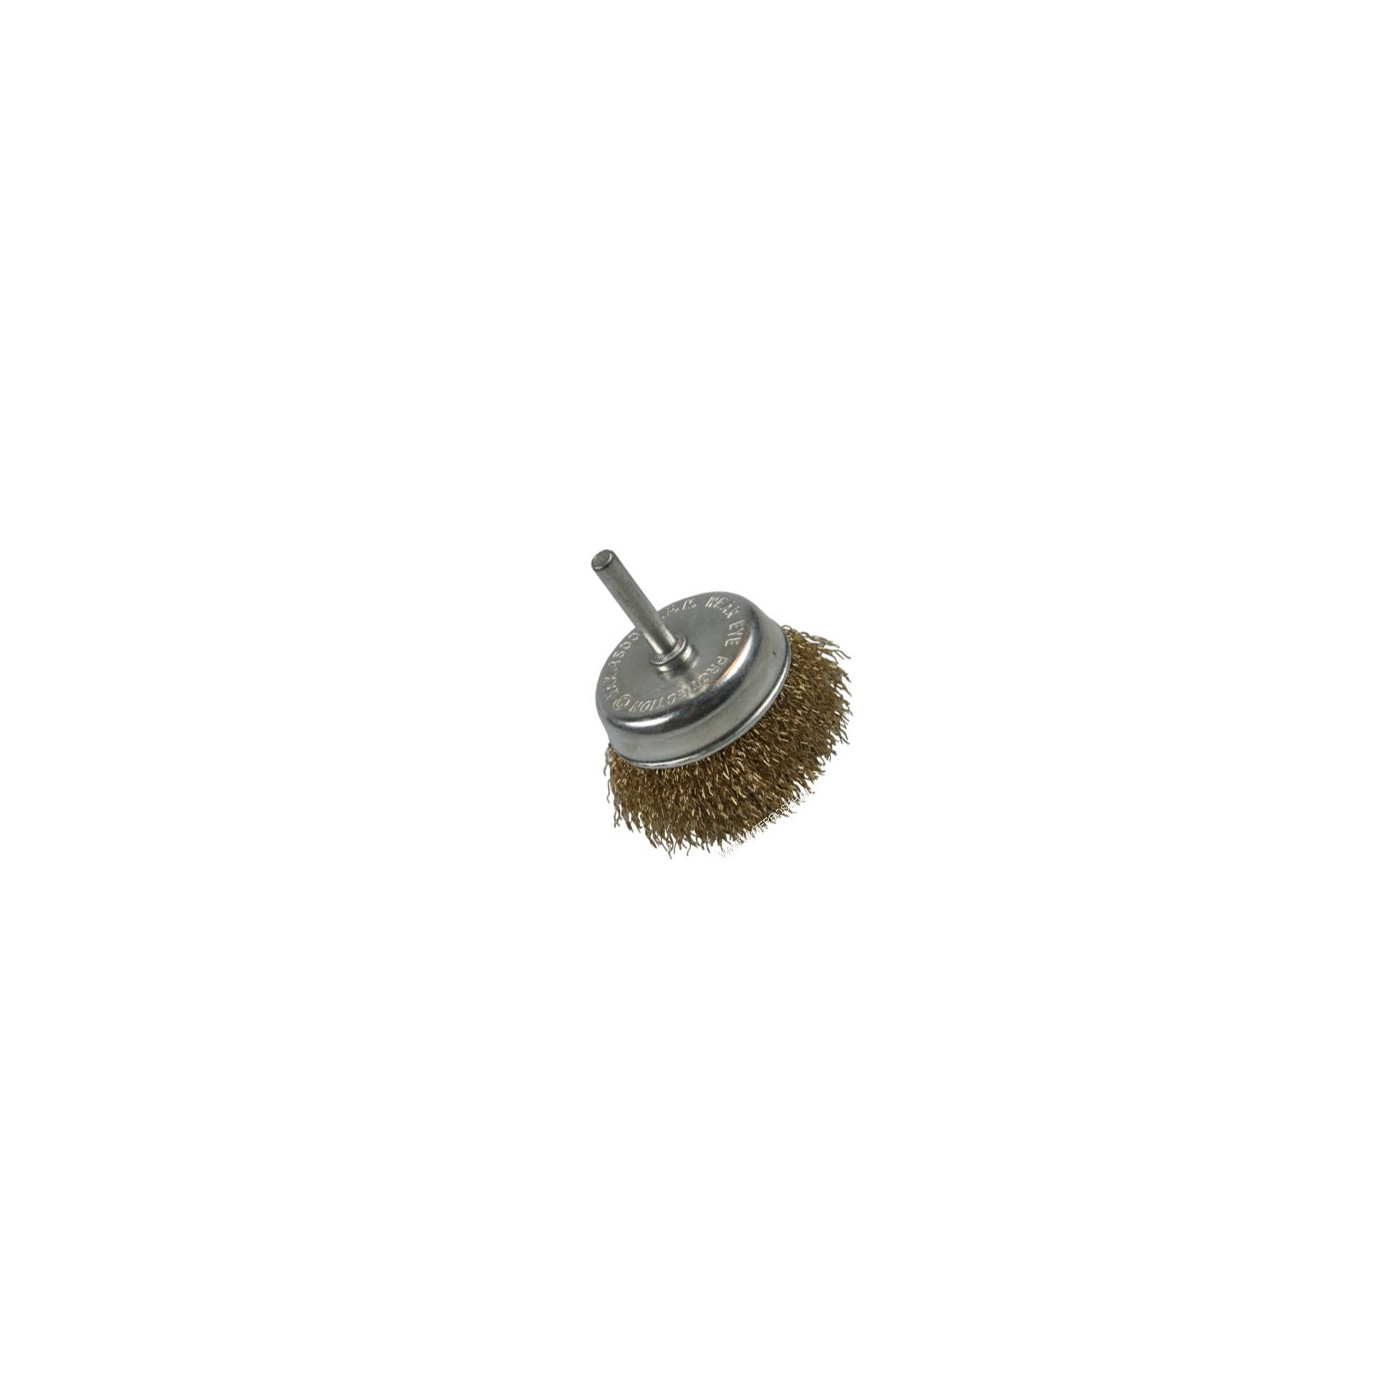 Metal brush for drilling machines, 75 mm  - 1